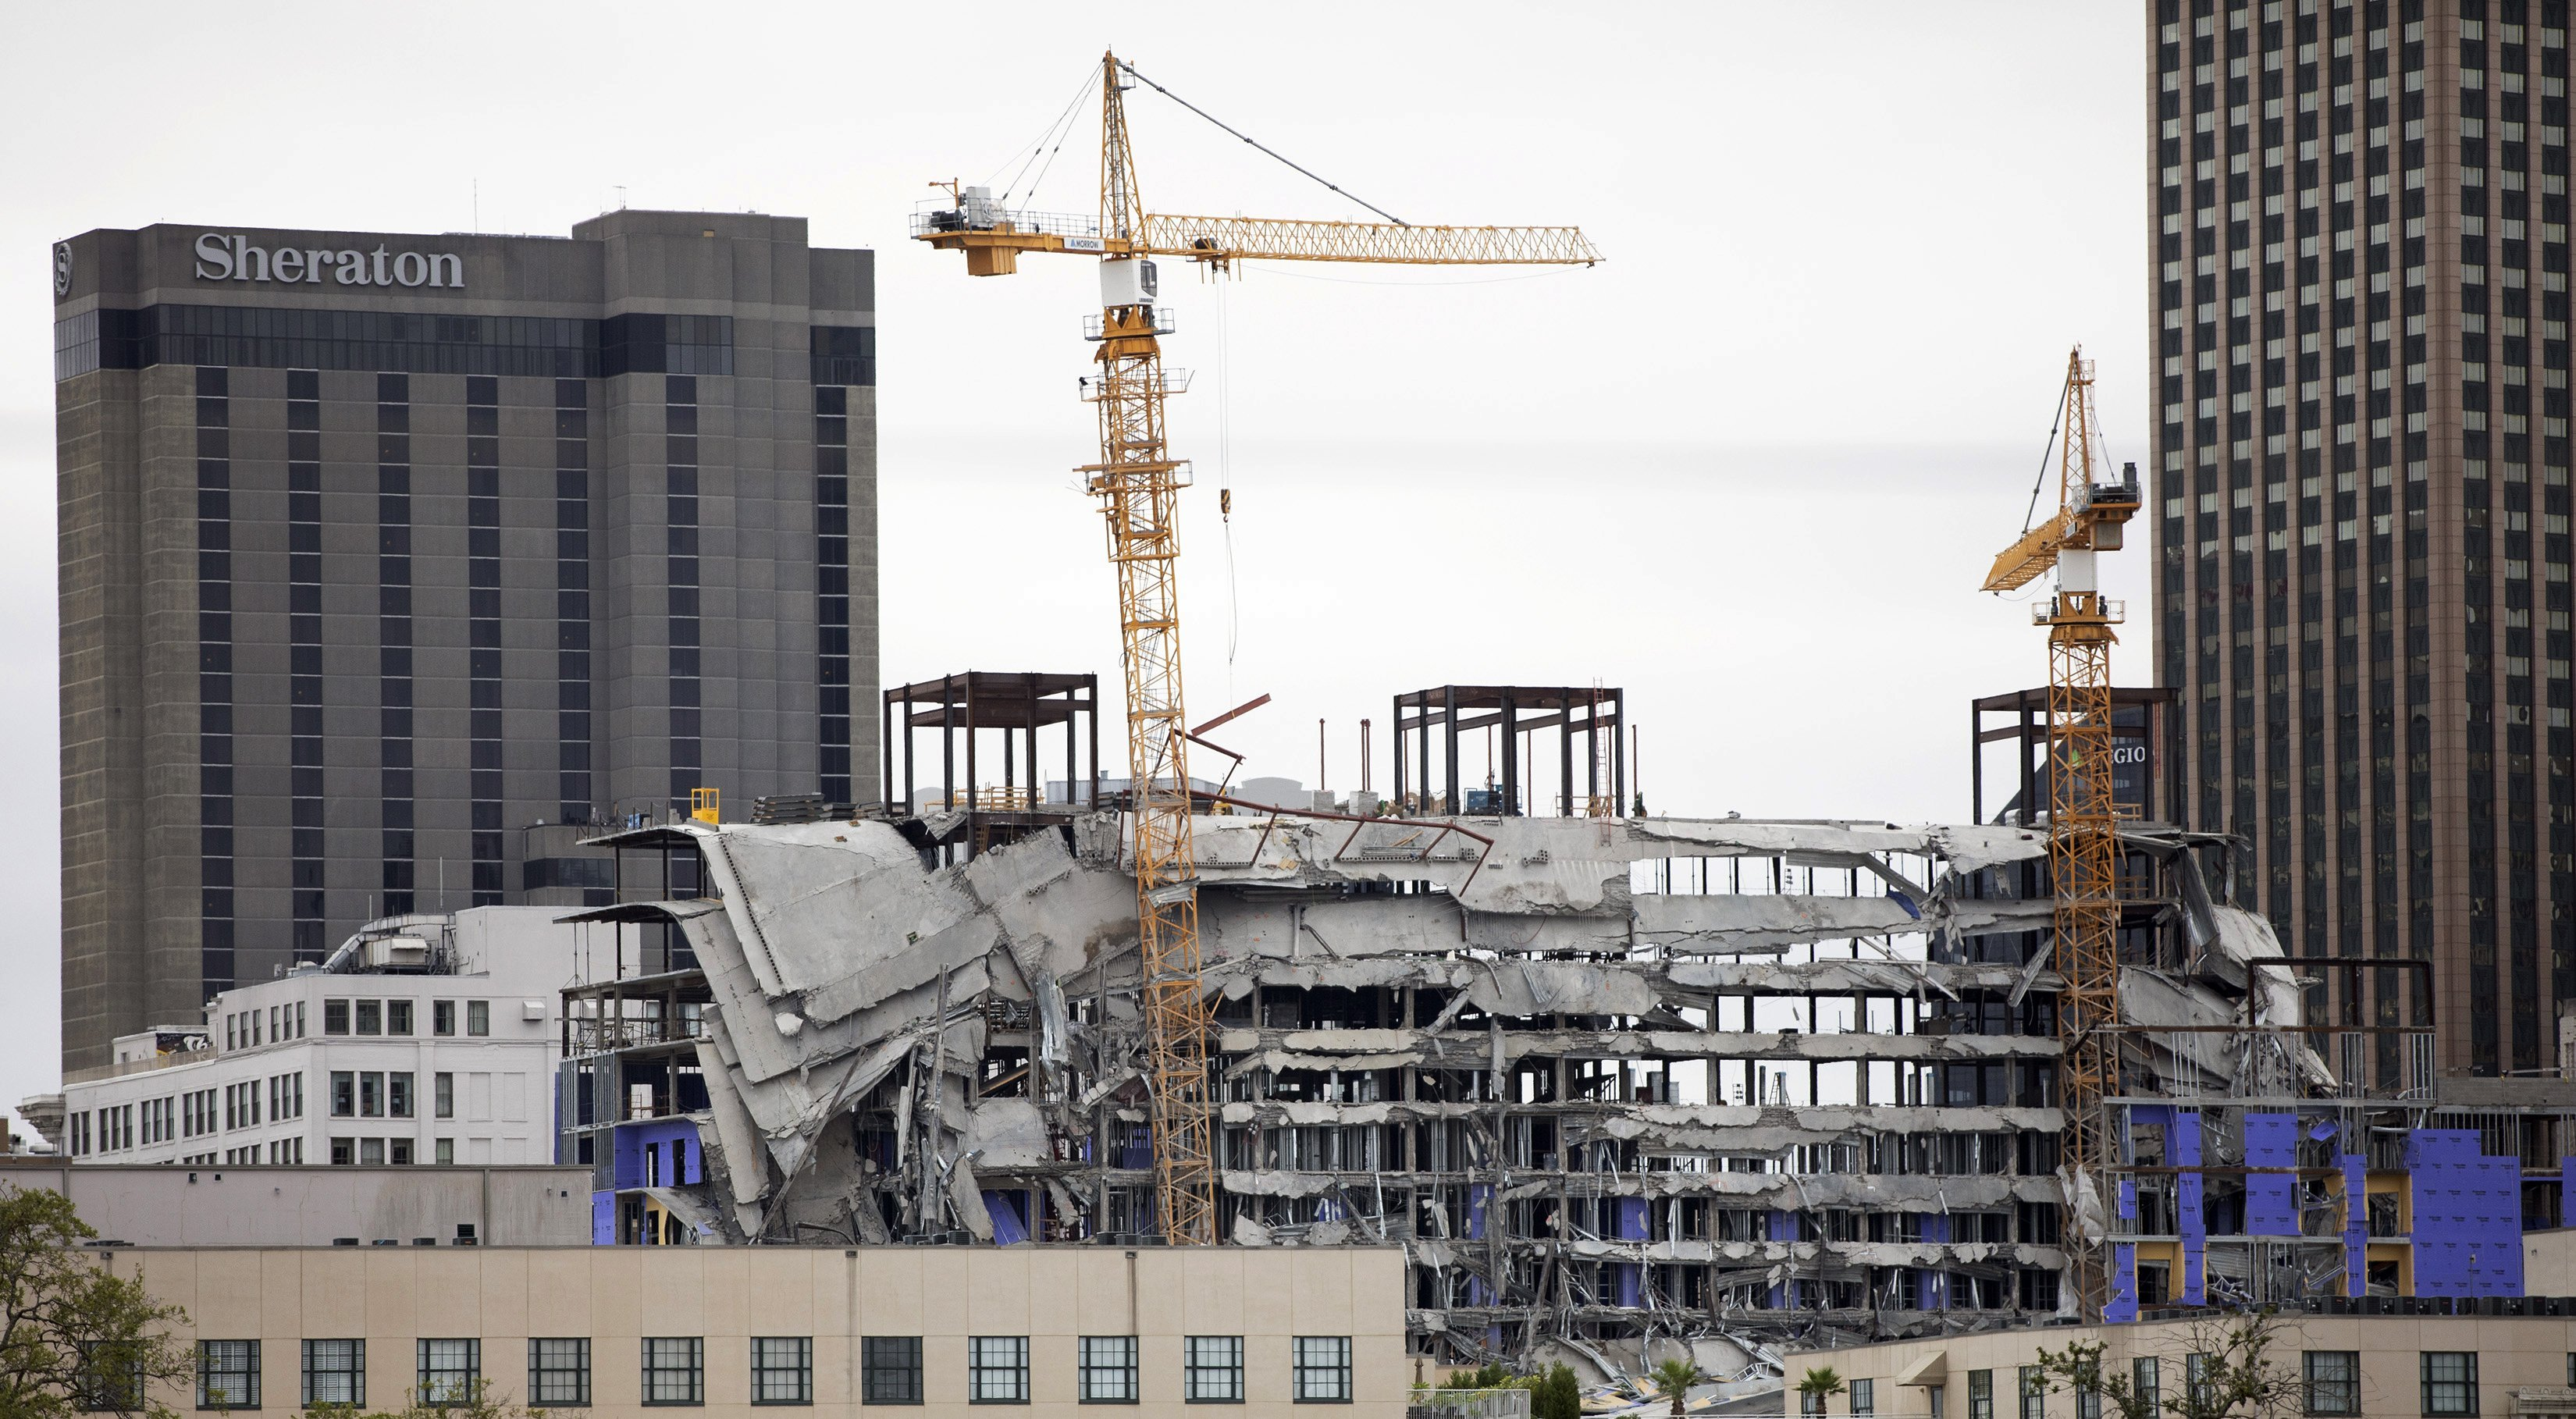 New Orleans officials are about to blow up the cranes at the collapsed Hard Rock hotel. Here's why